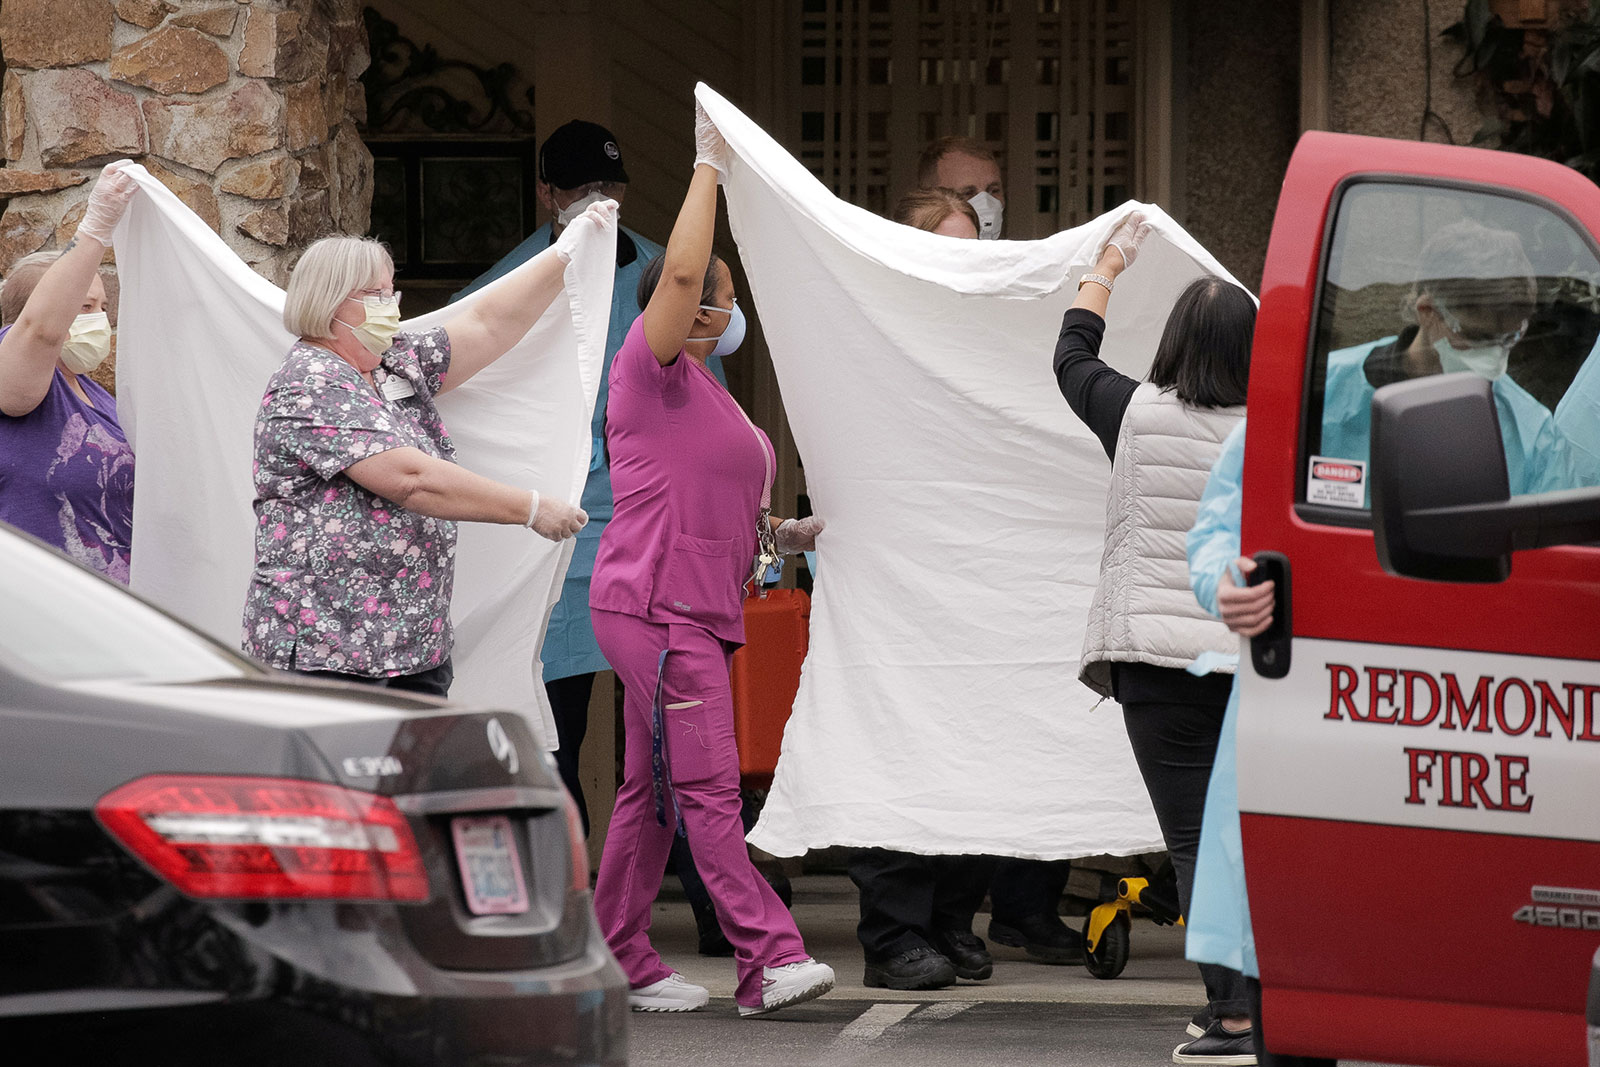 Medics and other healthcare workers transfer a patient on a stretcher to an ambulance at the Life Care Center of Kirkland, the long-term care facility linked to the two of three confirmed coronavirus cases in the state, in Kirkland, Washington on Sunday.